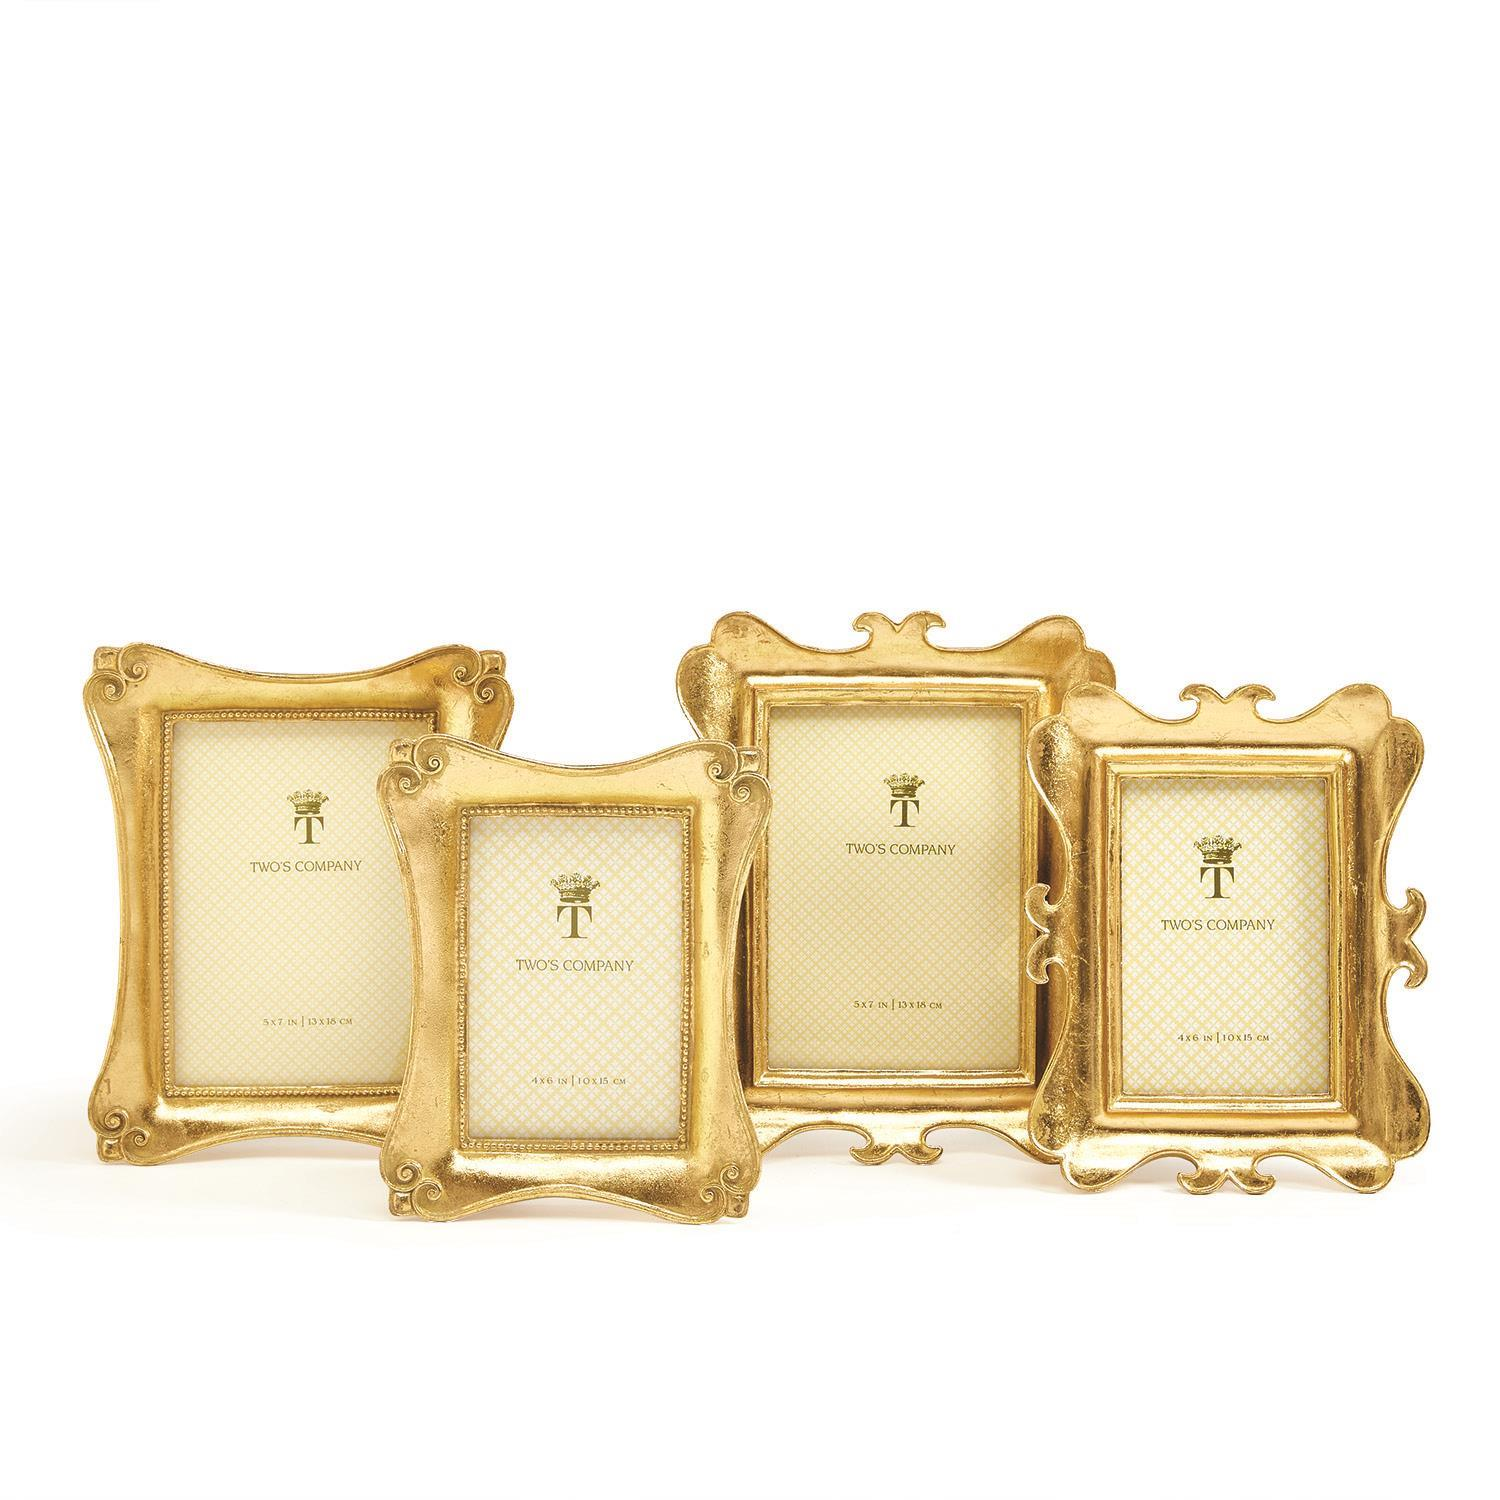 ac4b36844ad9 S 2 Gold Leaf Frames Includes 2 Sizes and Styles